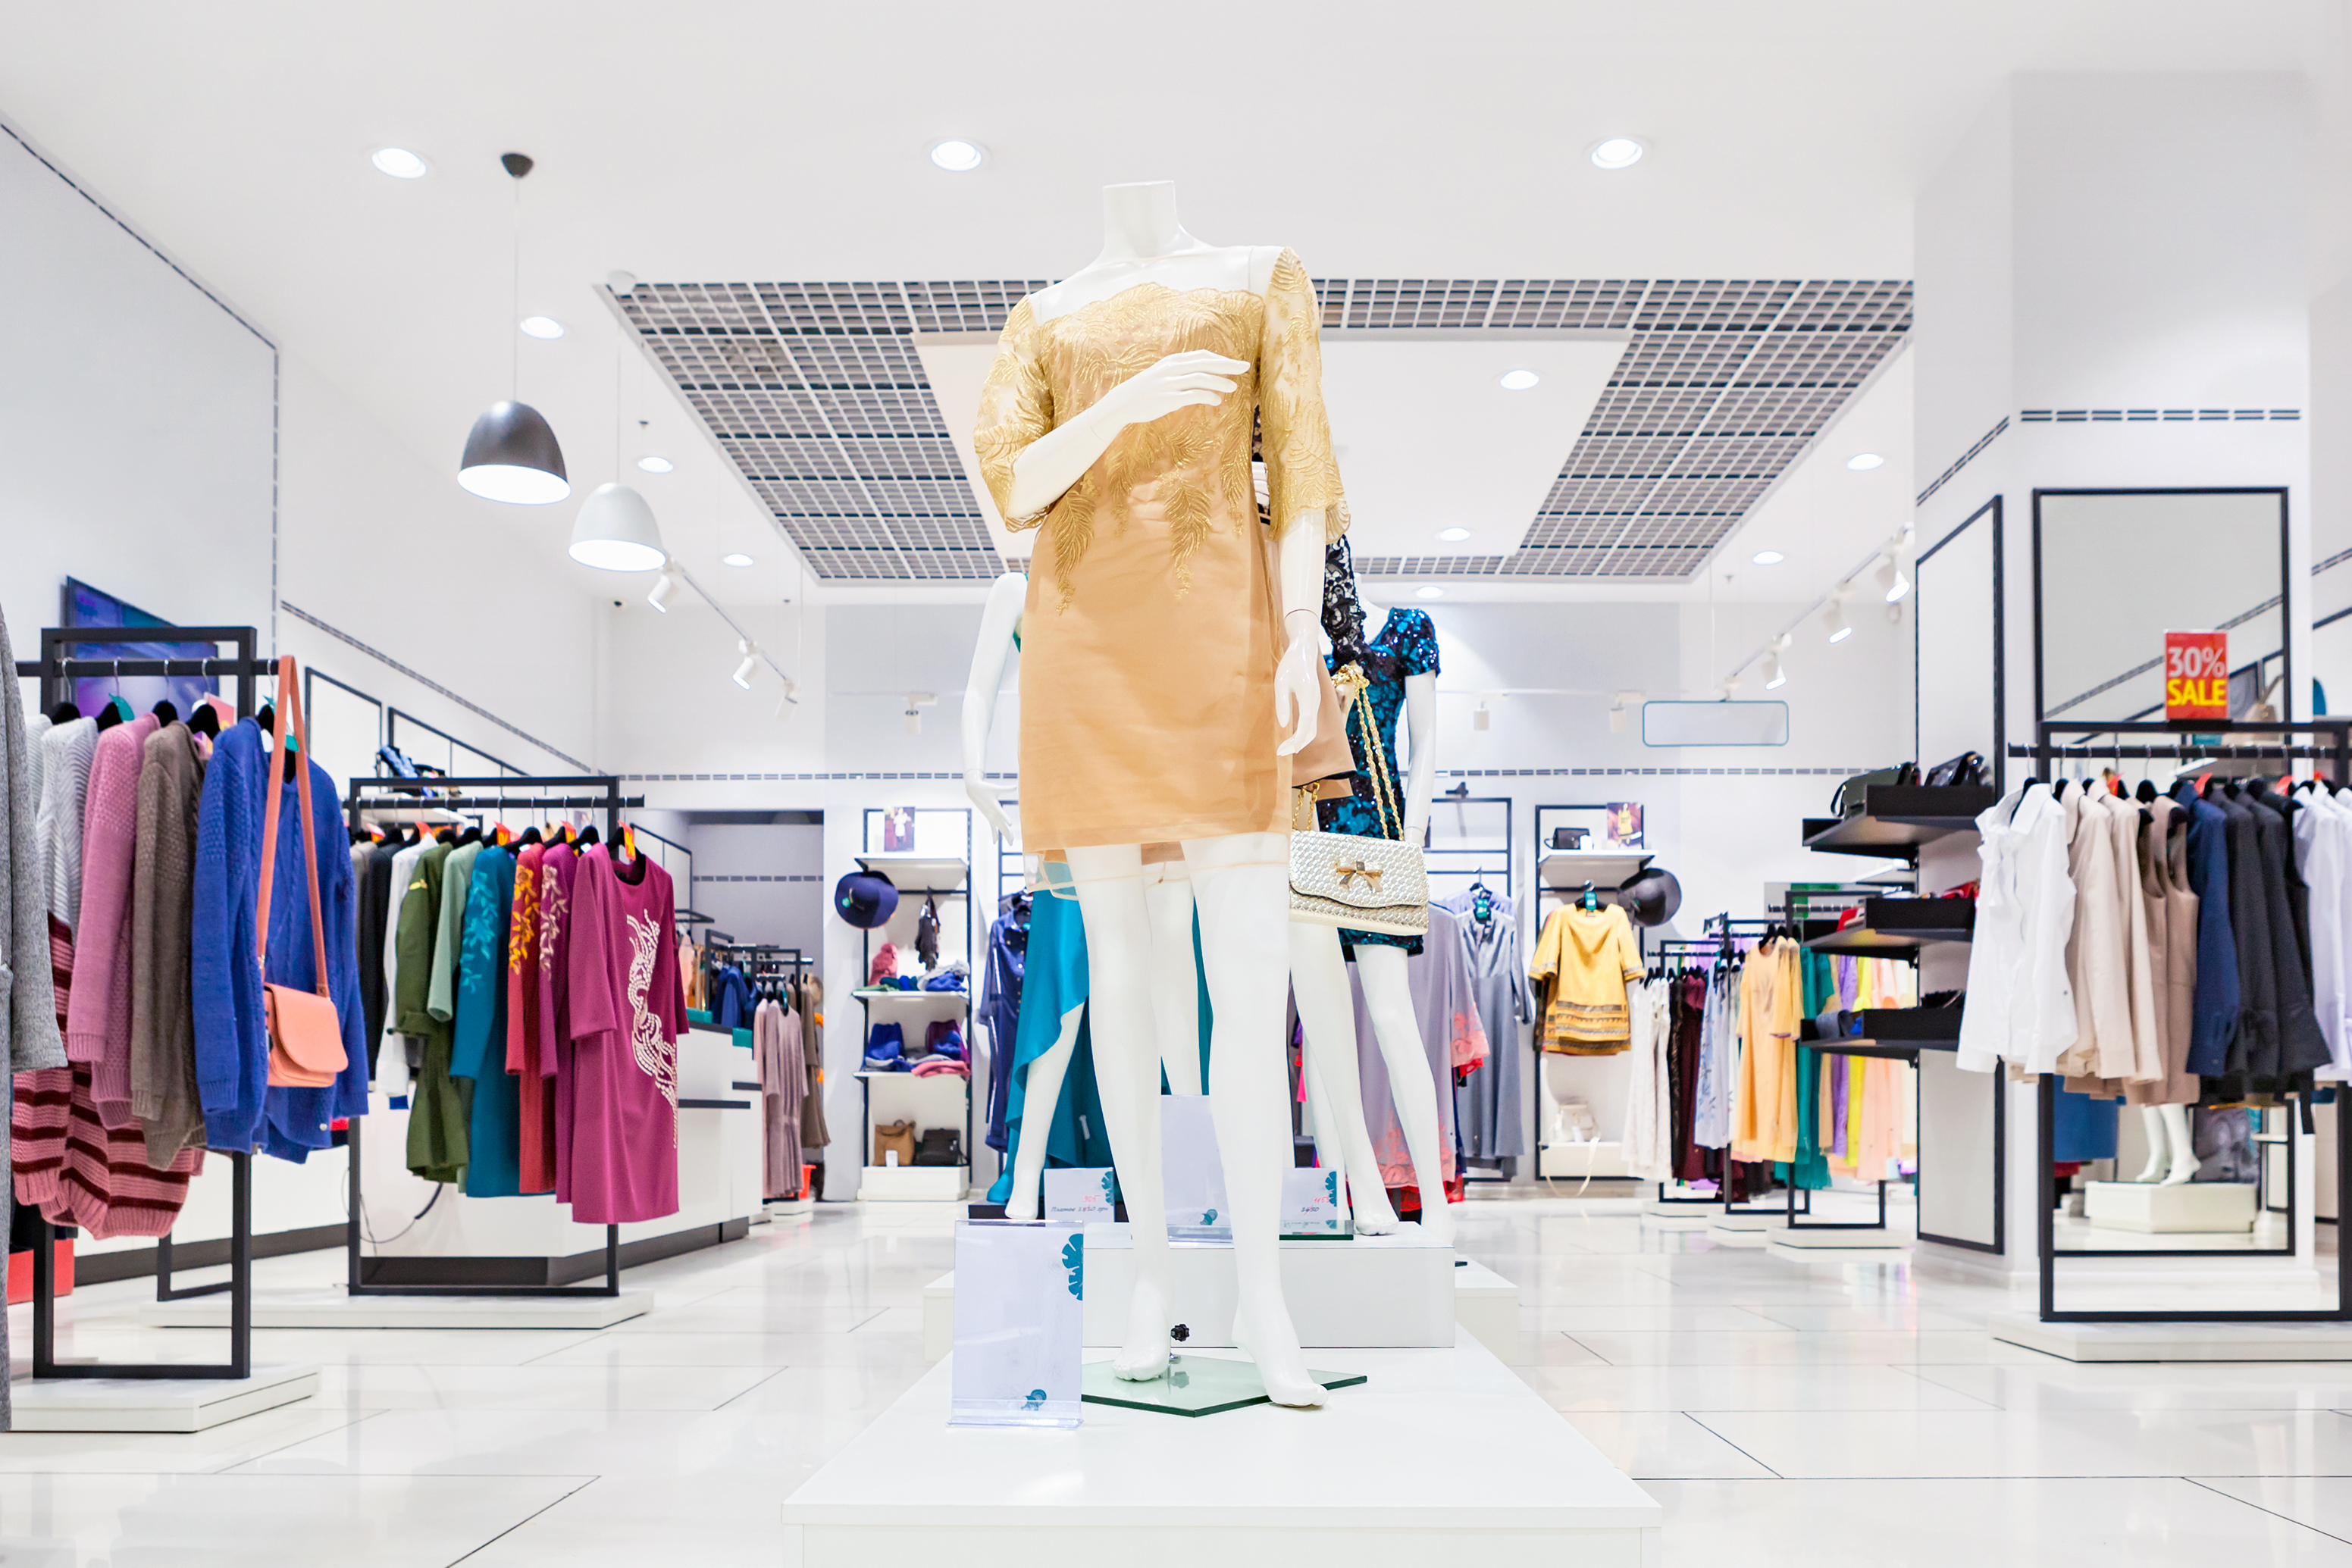 interior of high-end department store